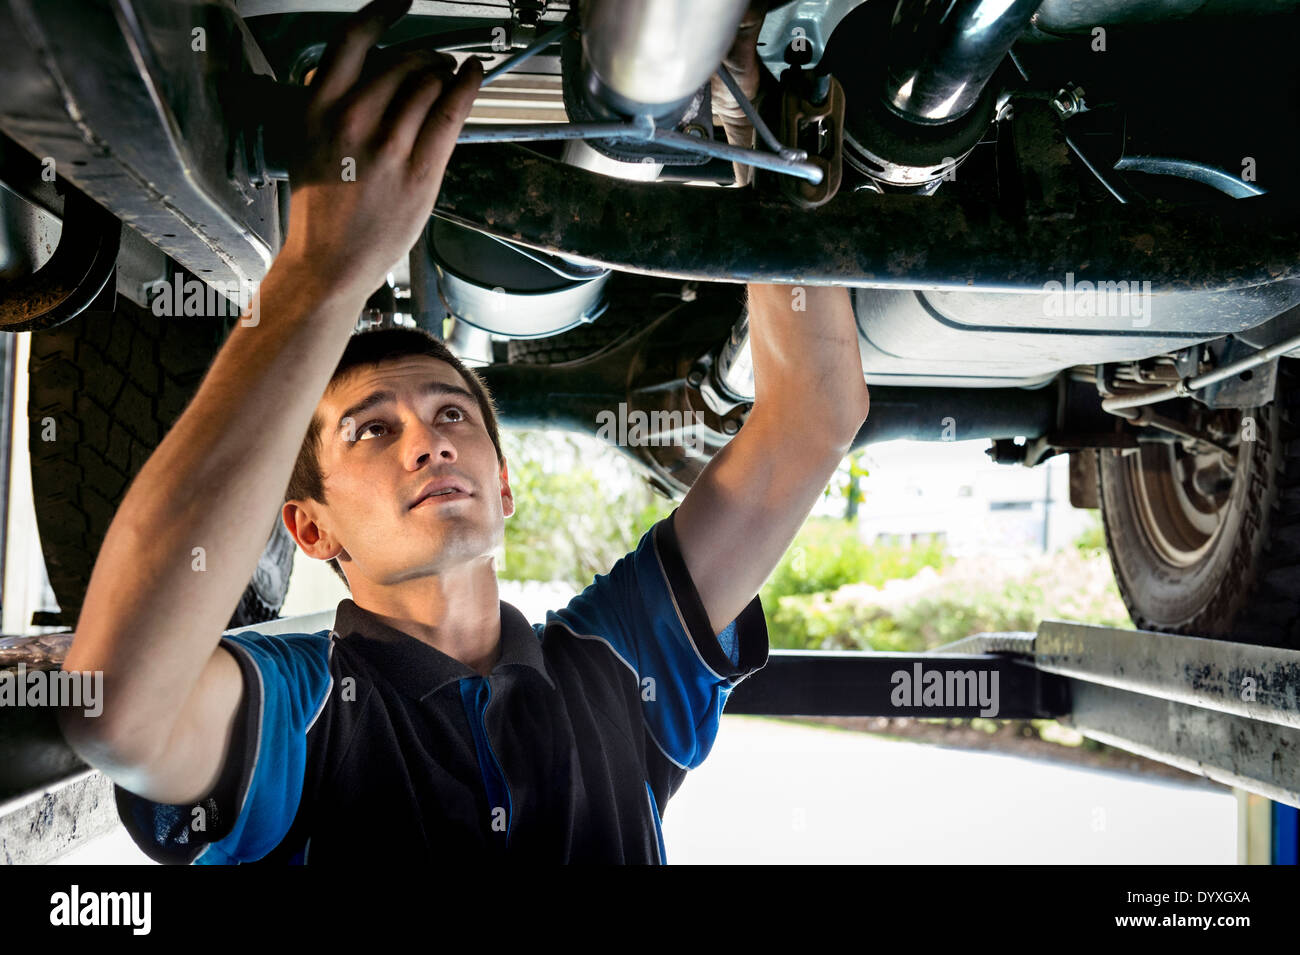 Young mechanic working under car - Stock Image